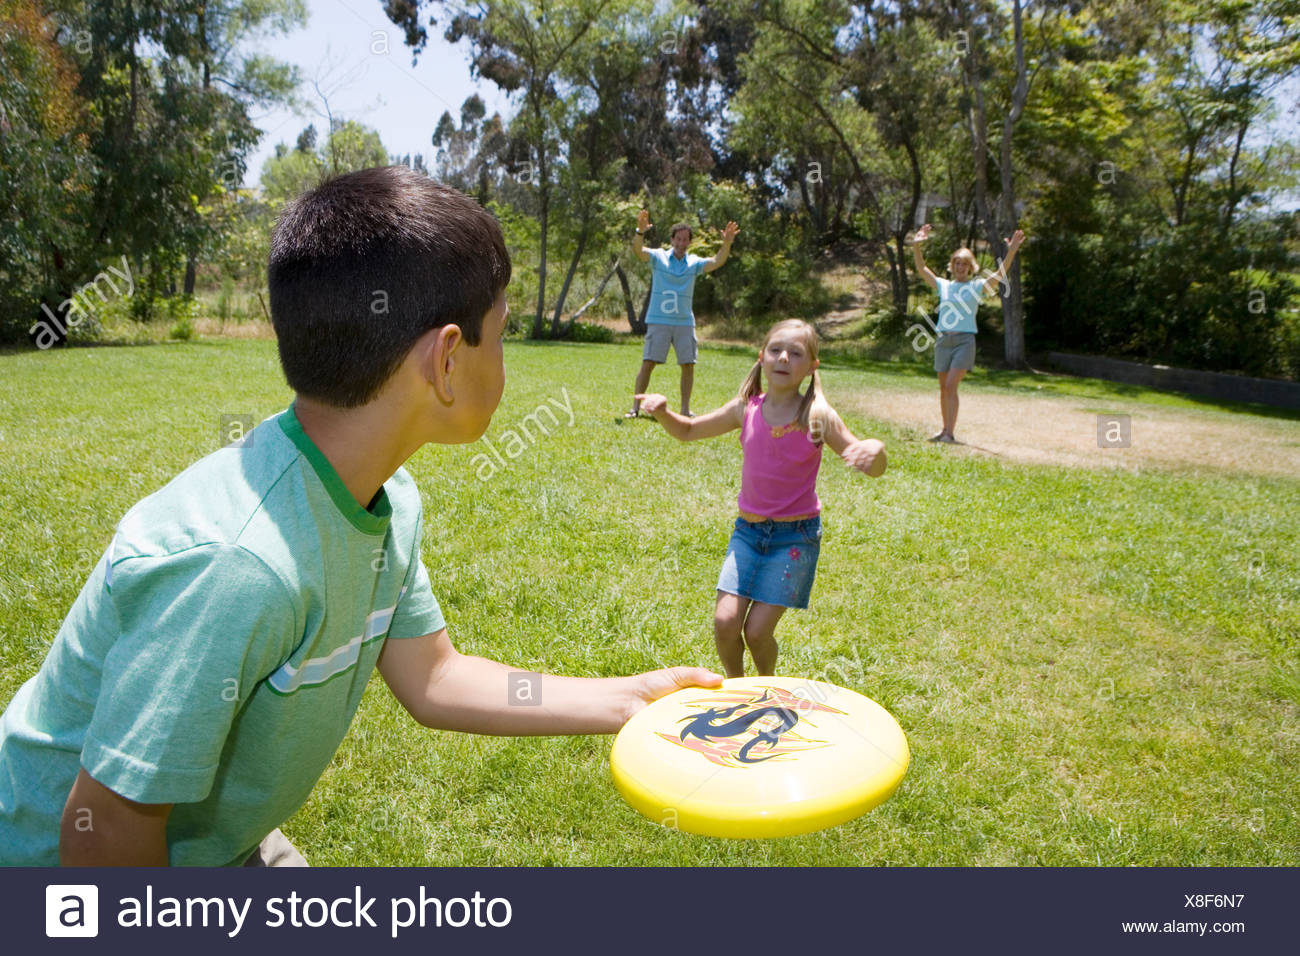 Family playing frisbee in park boy 9 11 throwing disc to parents girl 7 9 in middle - Stock Image